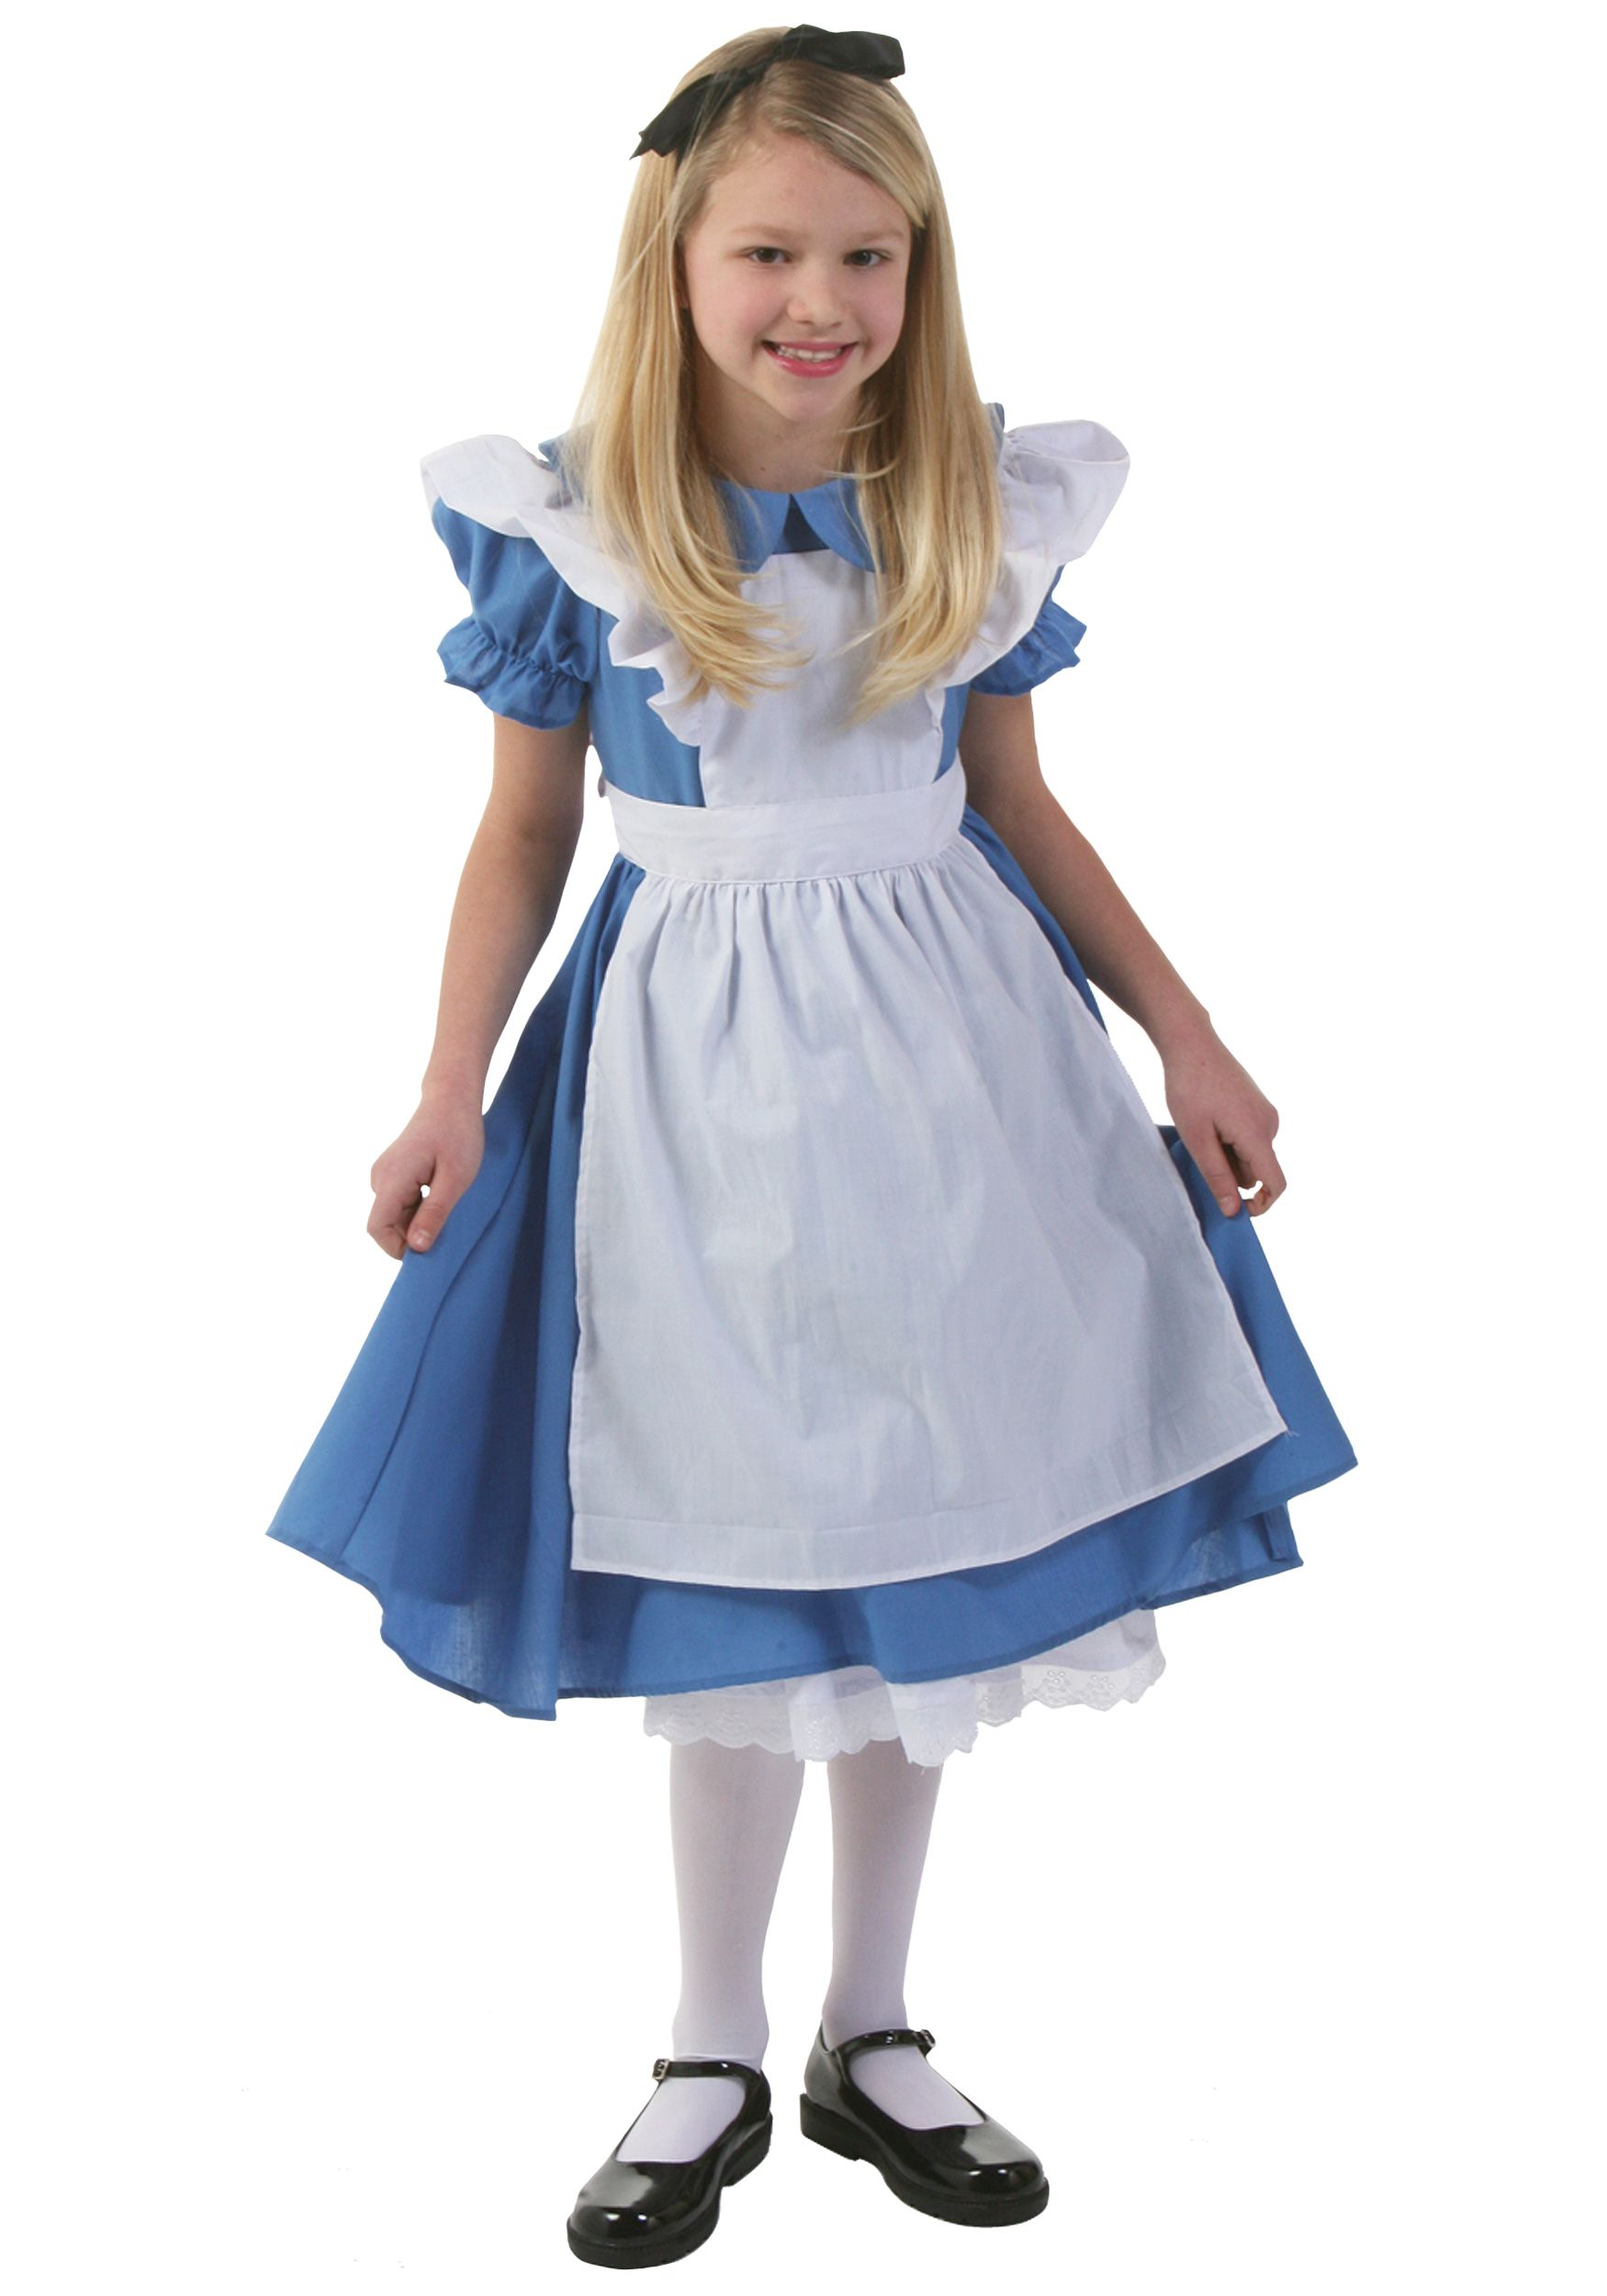 a4a5b2cca46 Child Deluxe Alice in Wonderland Dress for  34.99 from www.halloweencostumes .com